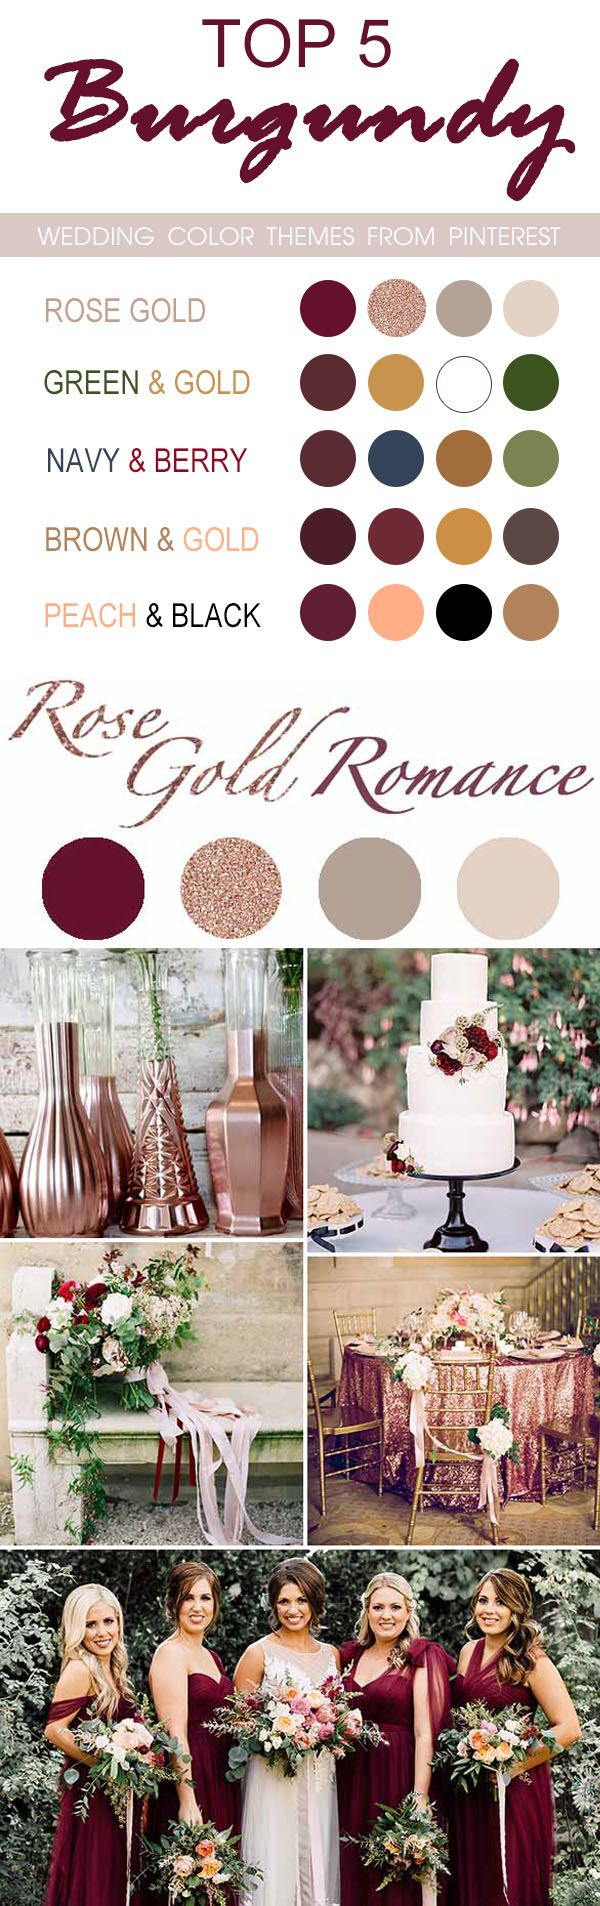 TOP 5 burgundy wedding color themes from pinterest for 2017